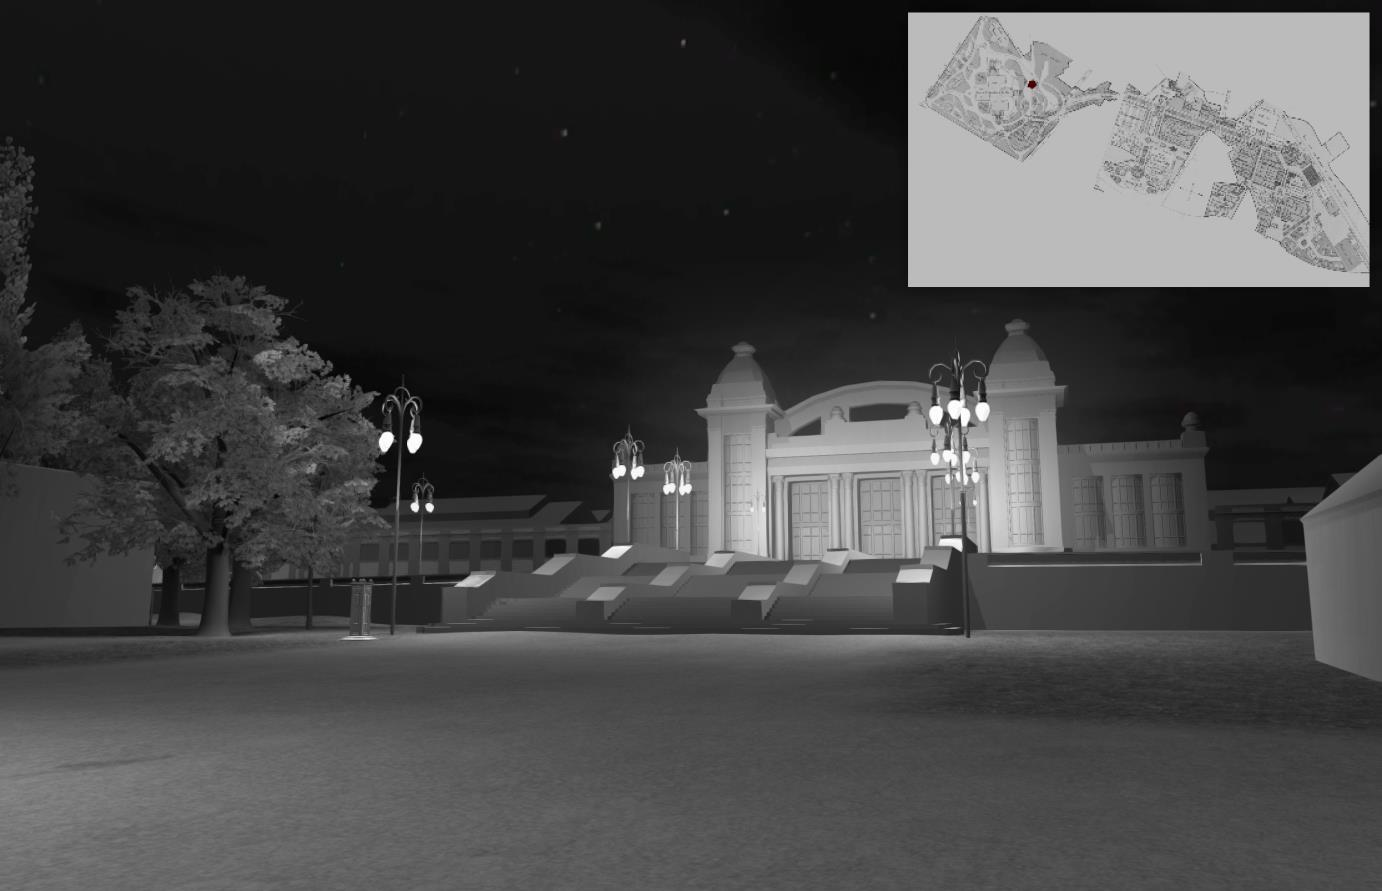 Festival and Floral Hall lit by street lamps Mindscape3D